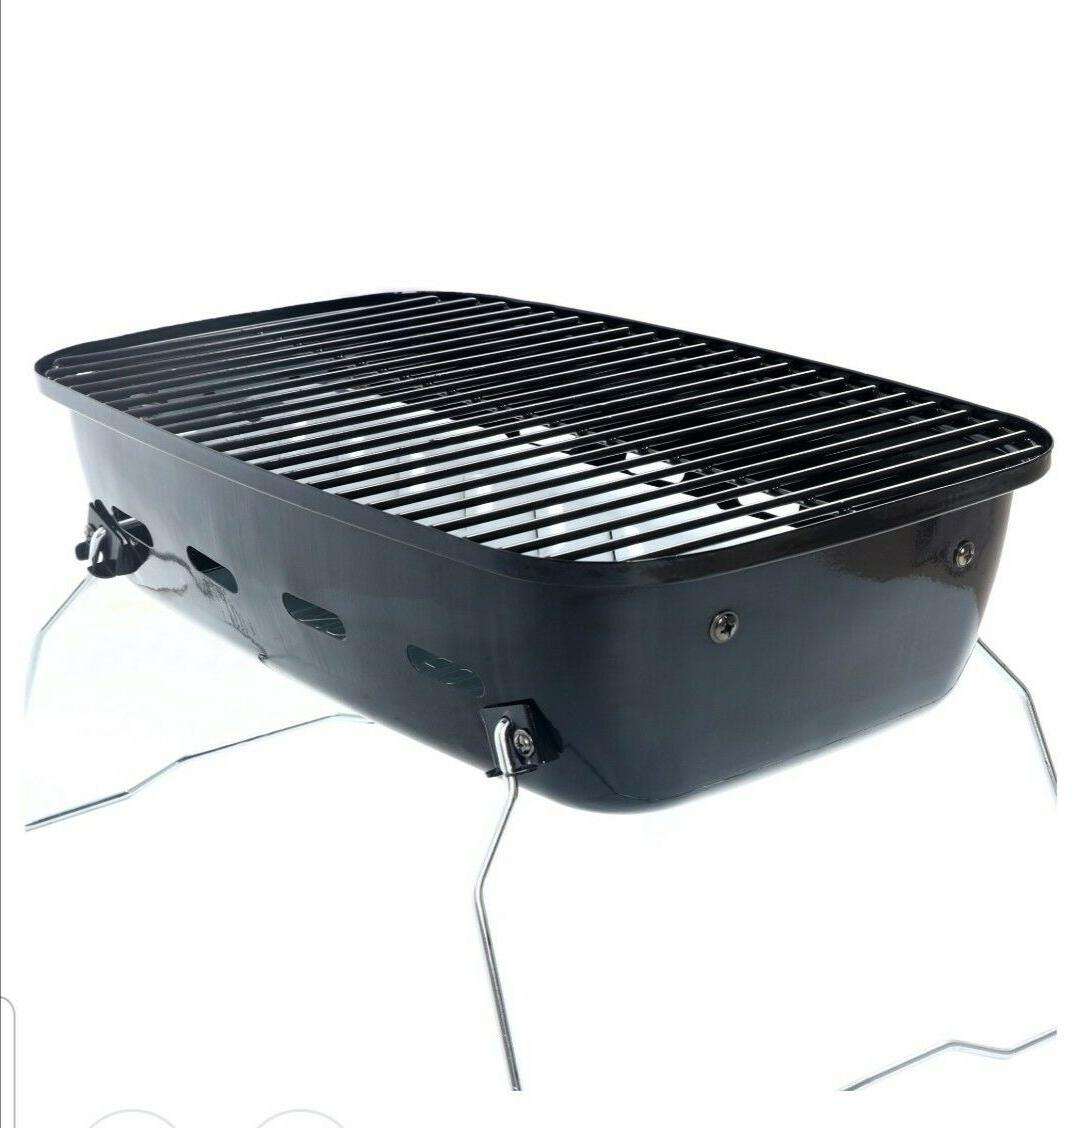 NEW Grill Portable Gas